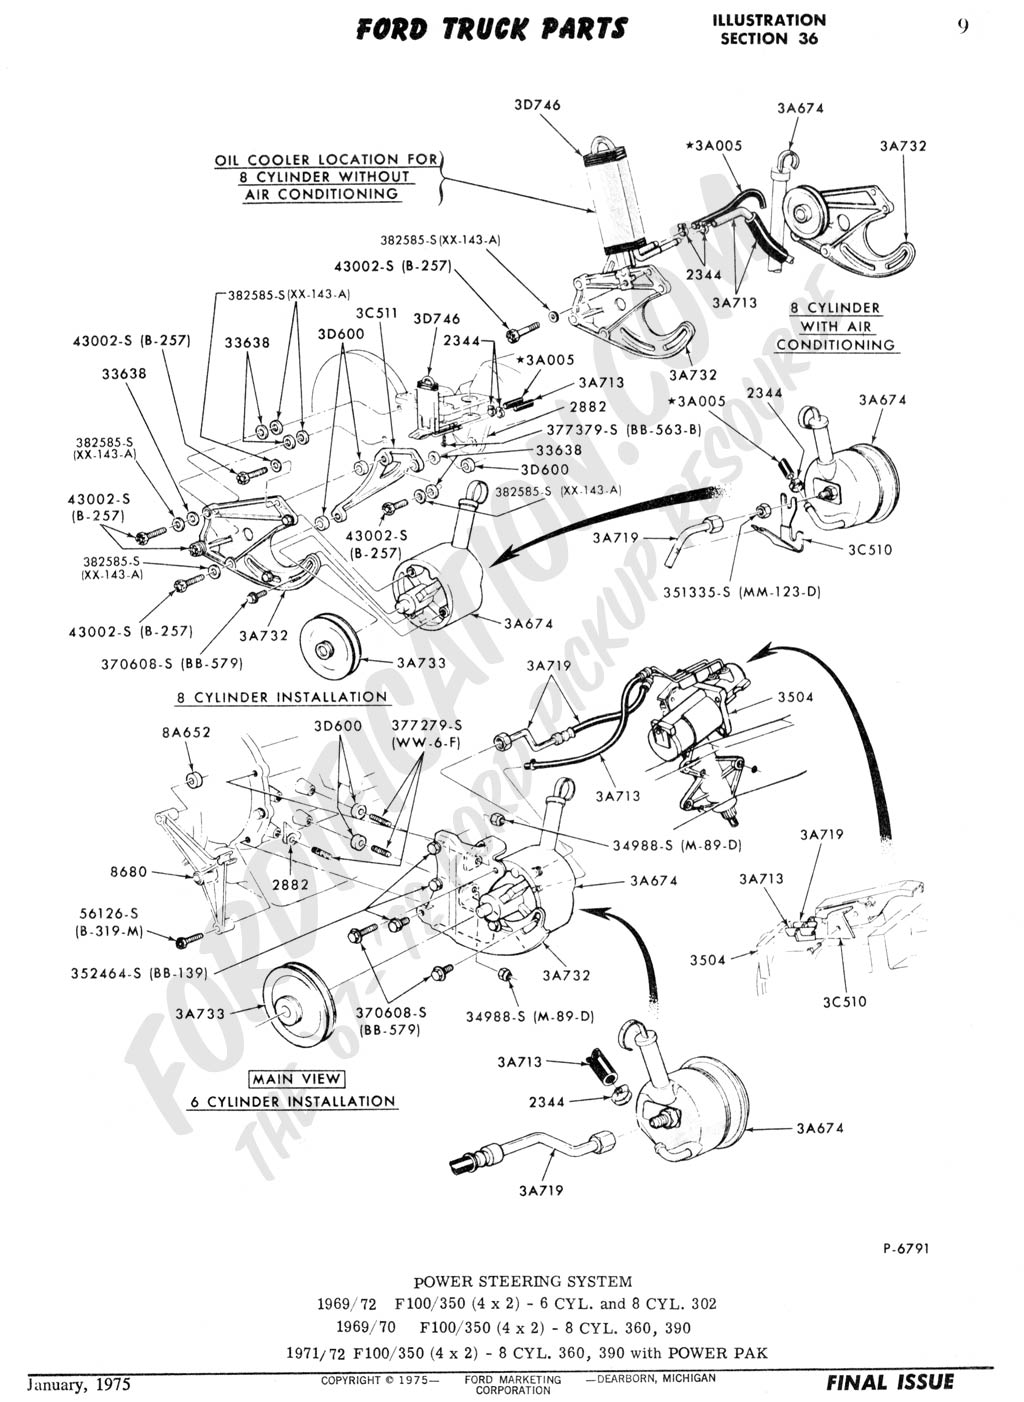 power steering parts diagram dual battery wiring car audio 2010 f150 system free engine